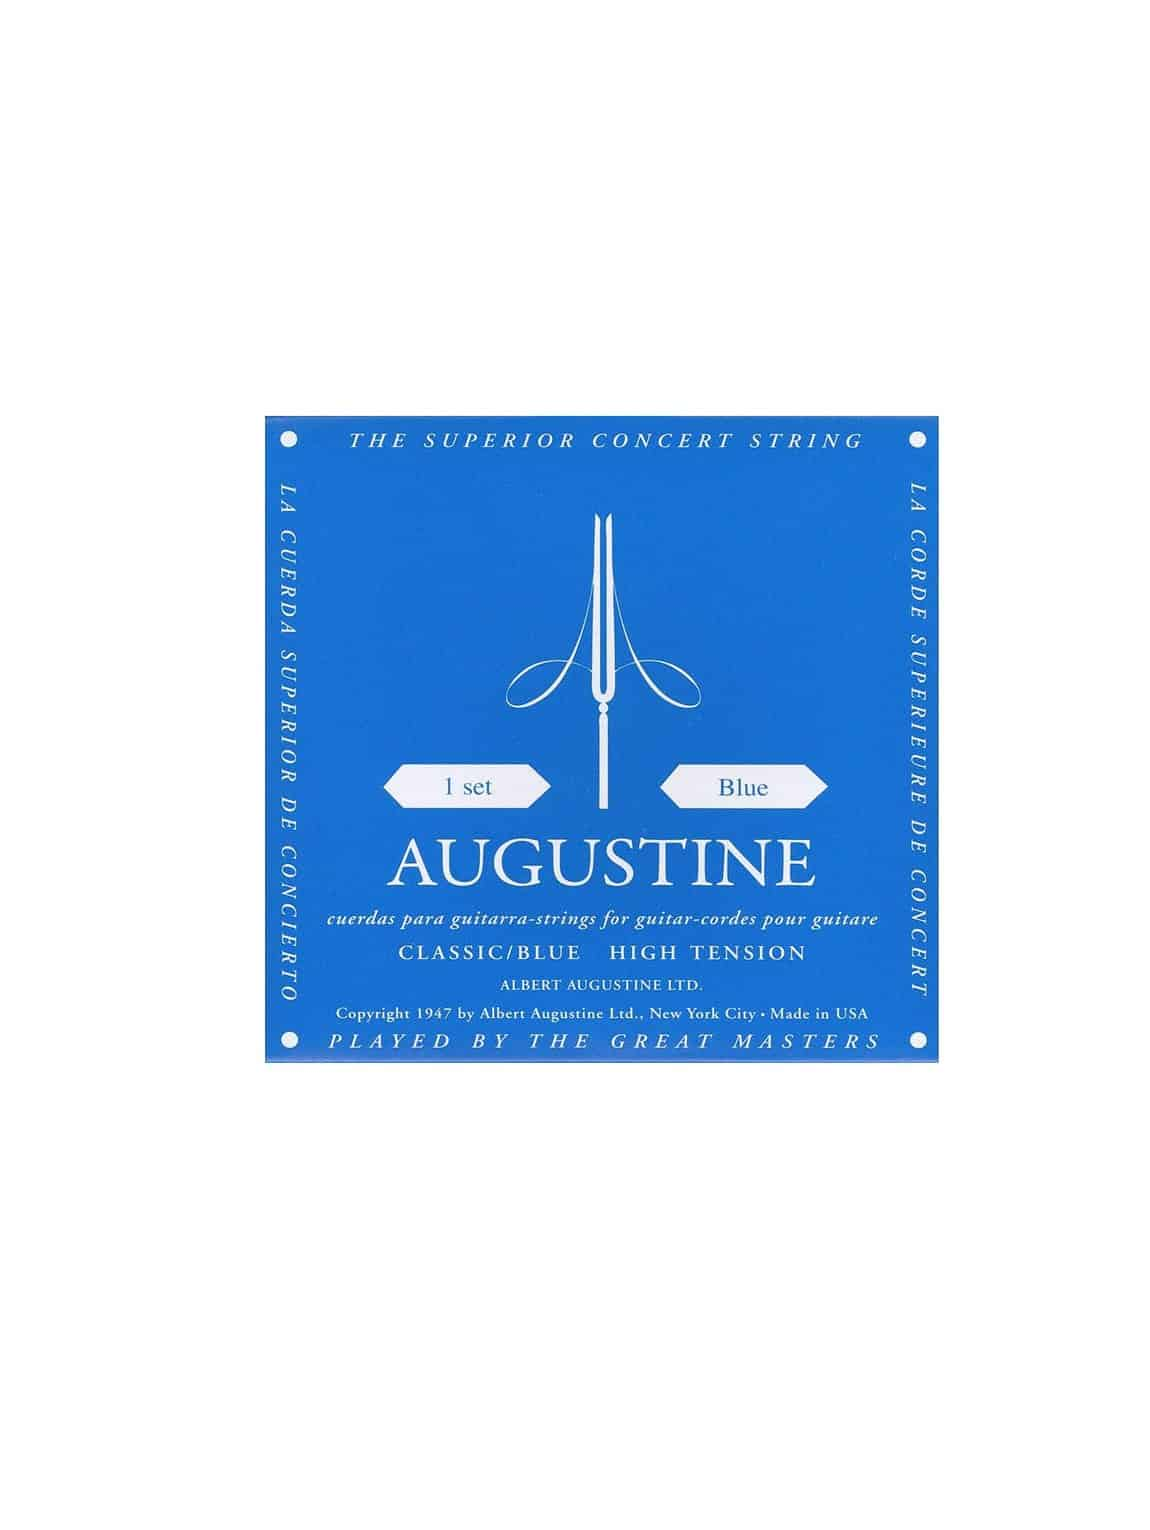 Augustine Classic Blue Classical Strings – High Tension